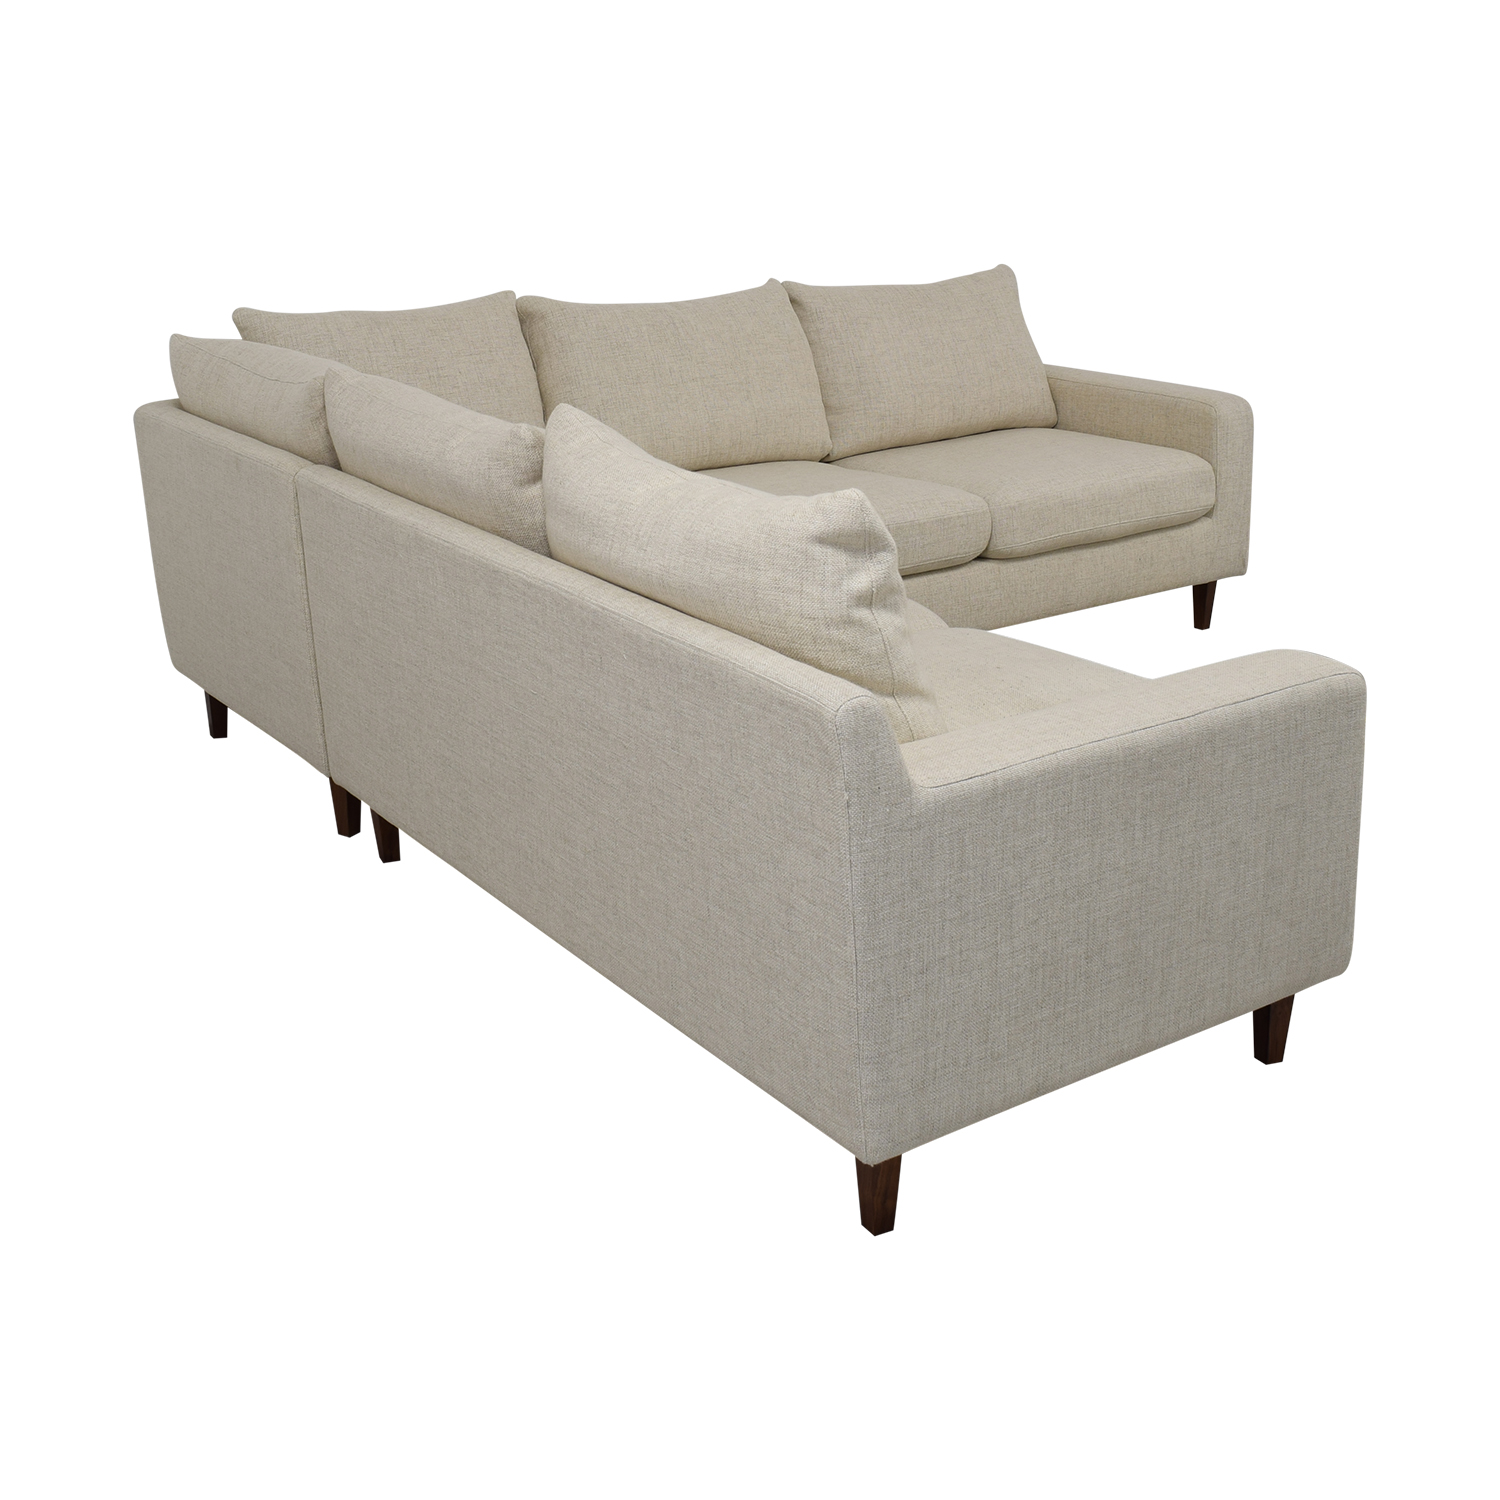 Interior Define Sloan L-Shaped Sectional Sofa discount